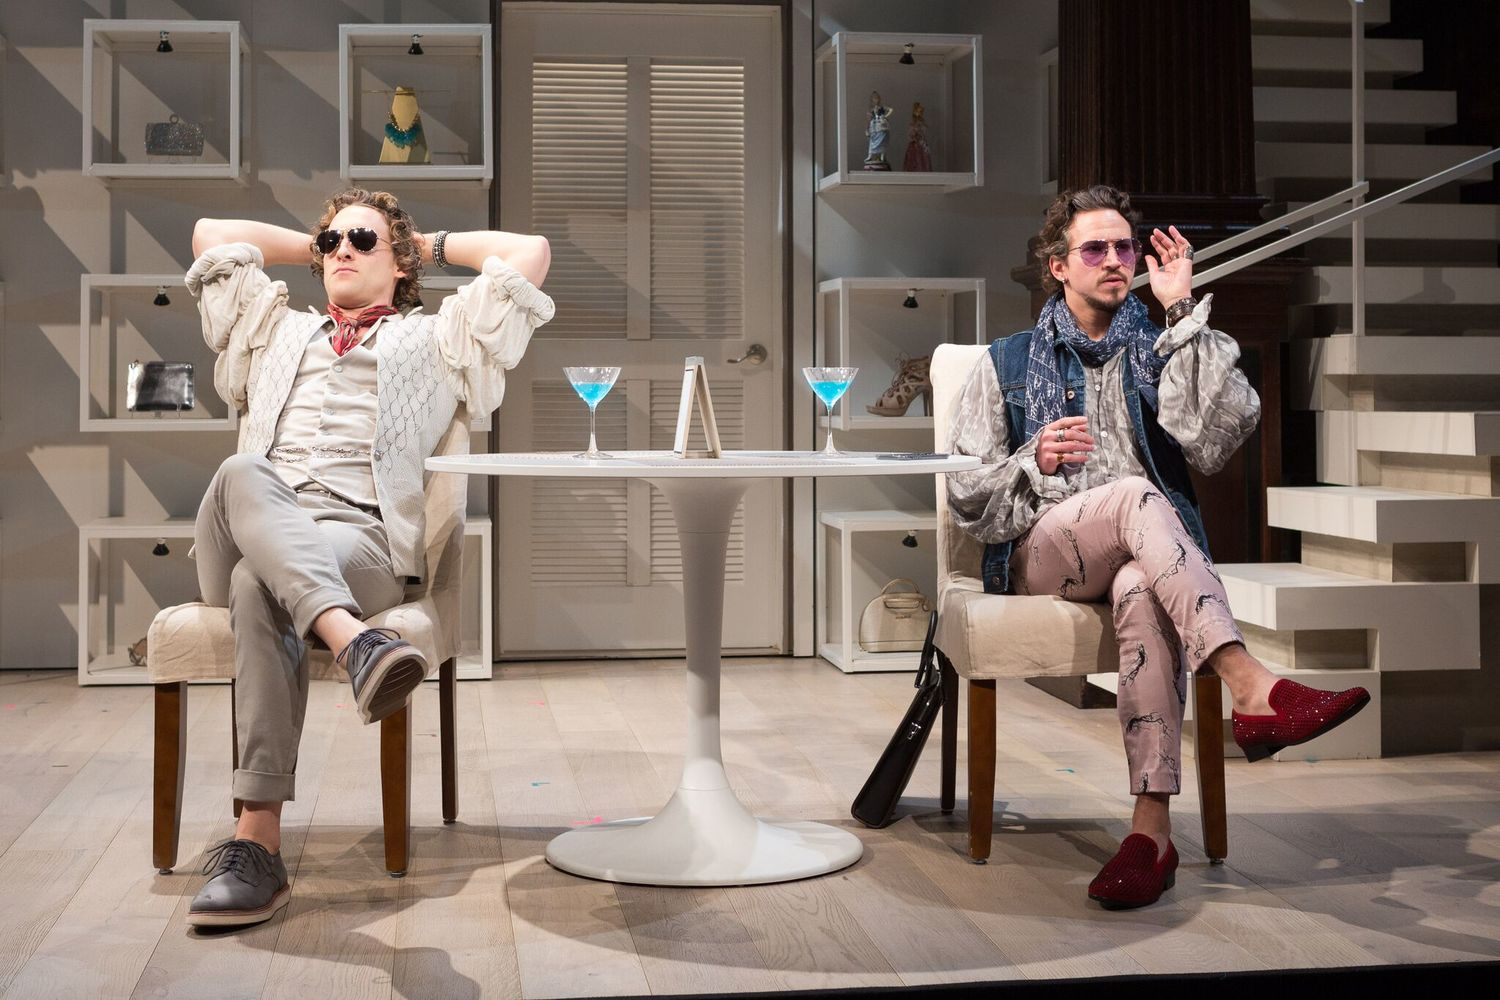 BWW Review: THE WAY OF THE WORLD at Folger Theatre is Biting Satire for the Reality TV Age